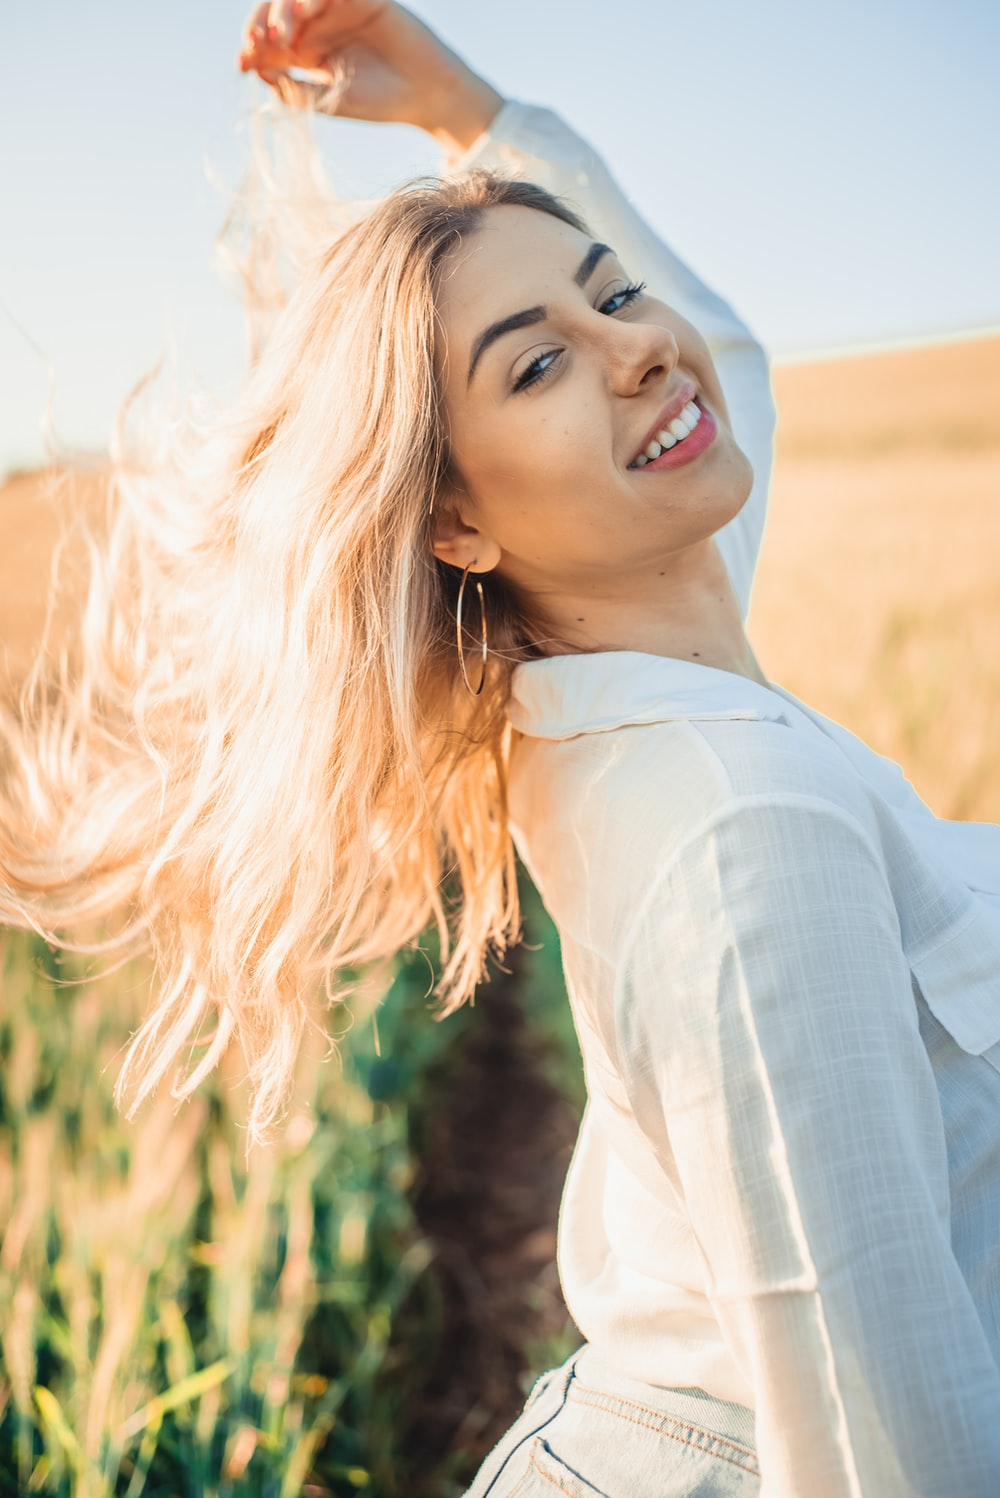 woman in white long sleeve shirt smiling